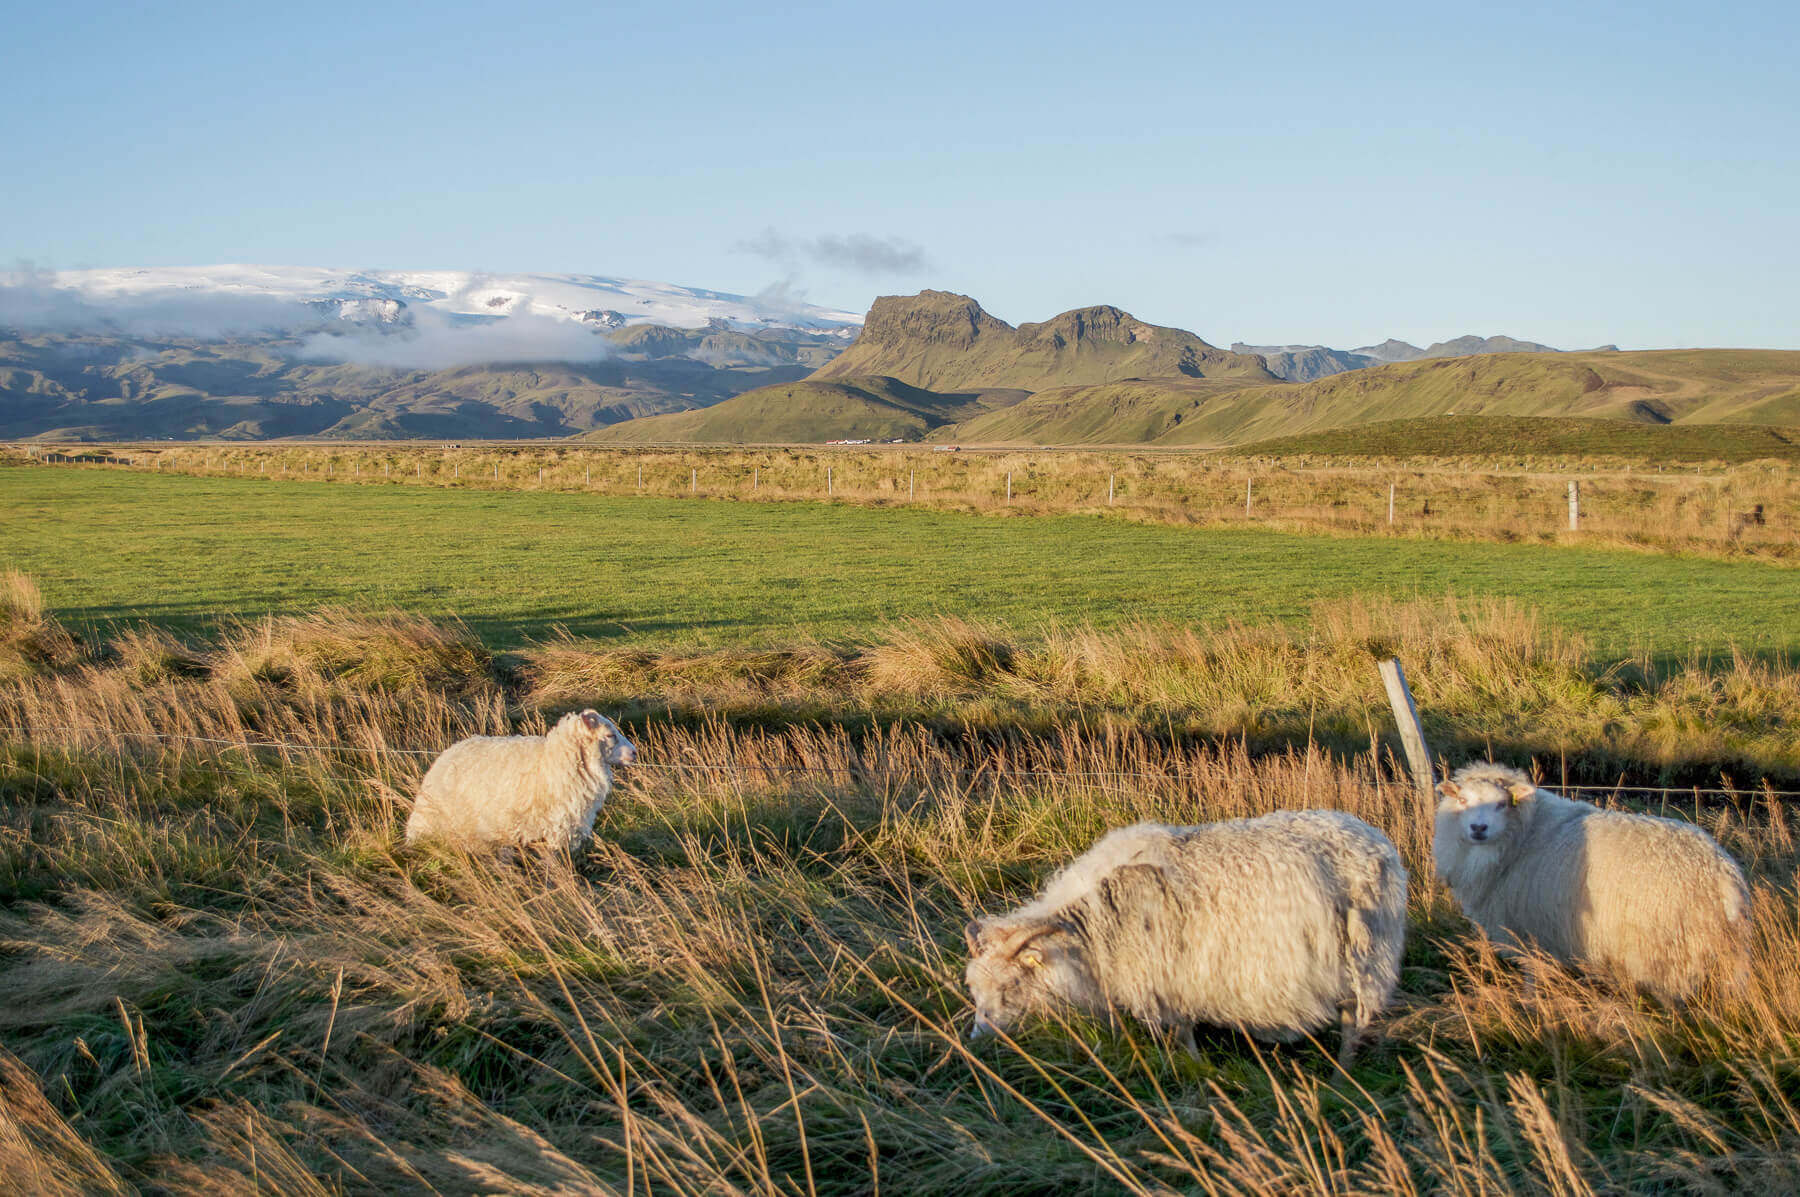 Icelandic sheep grazing in front of mountains